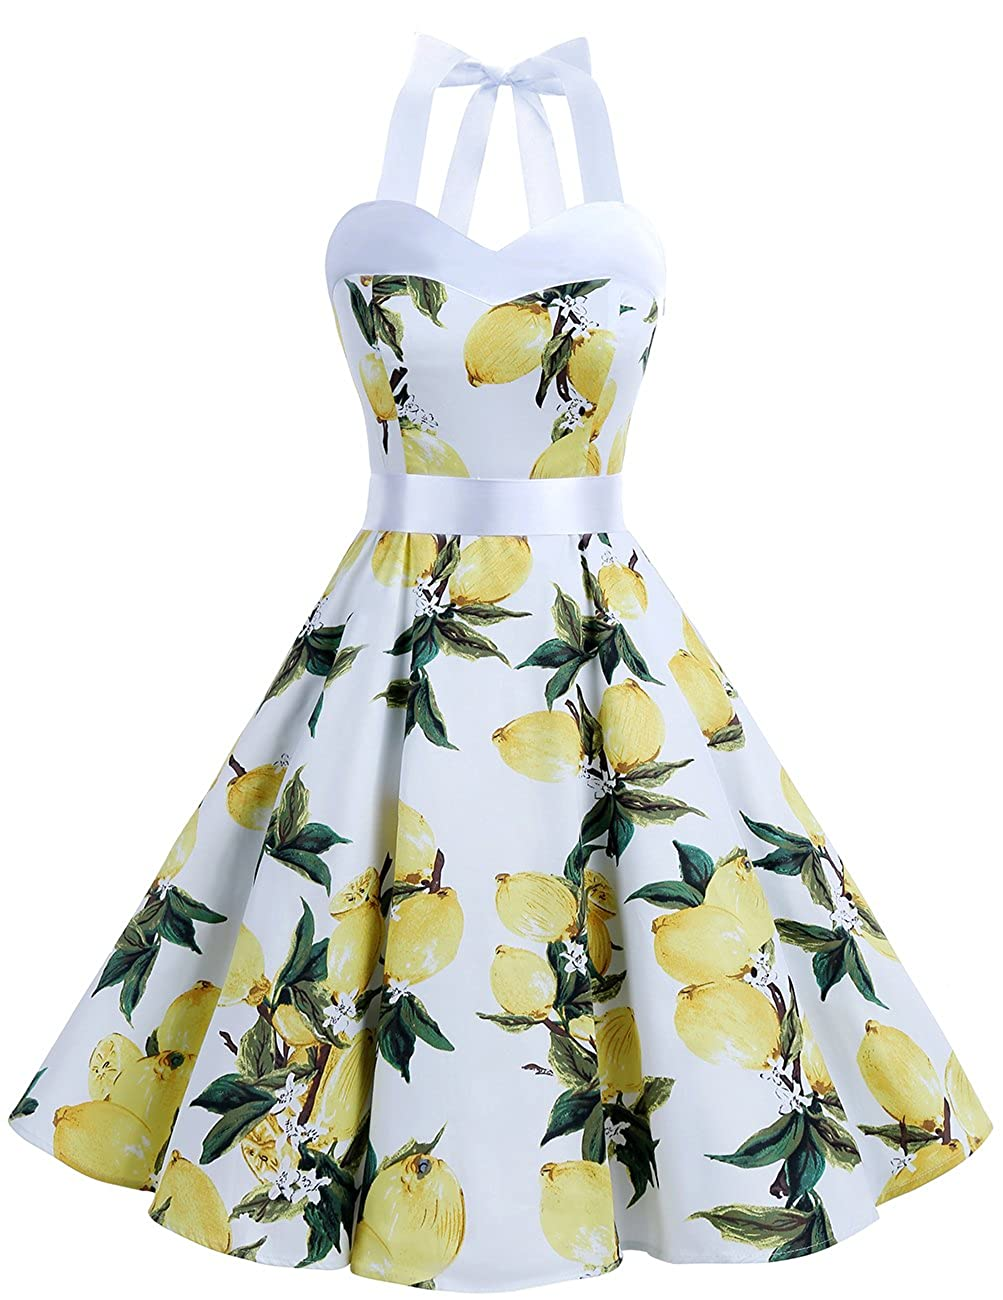 TALLA L. Dresstells® Halter 50s Rockabilly Polka Dots Audrey Dress Retro Cocktail Dress Lemon